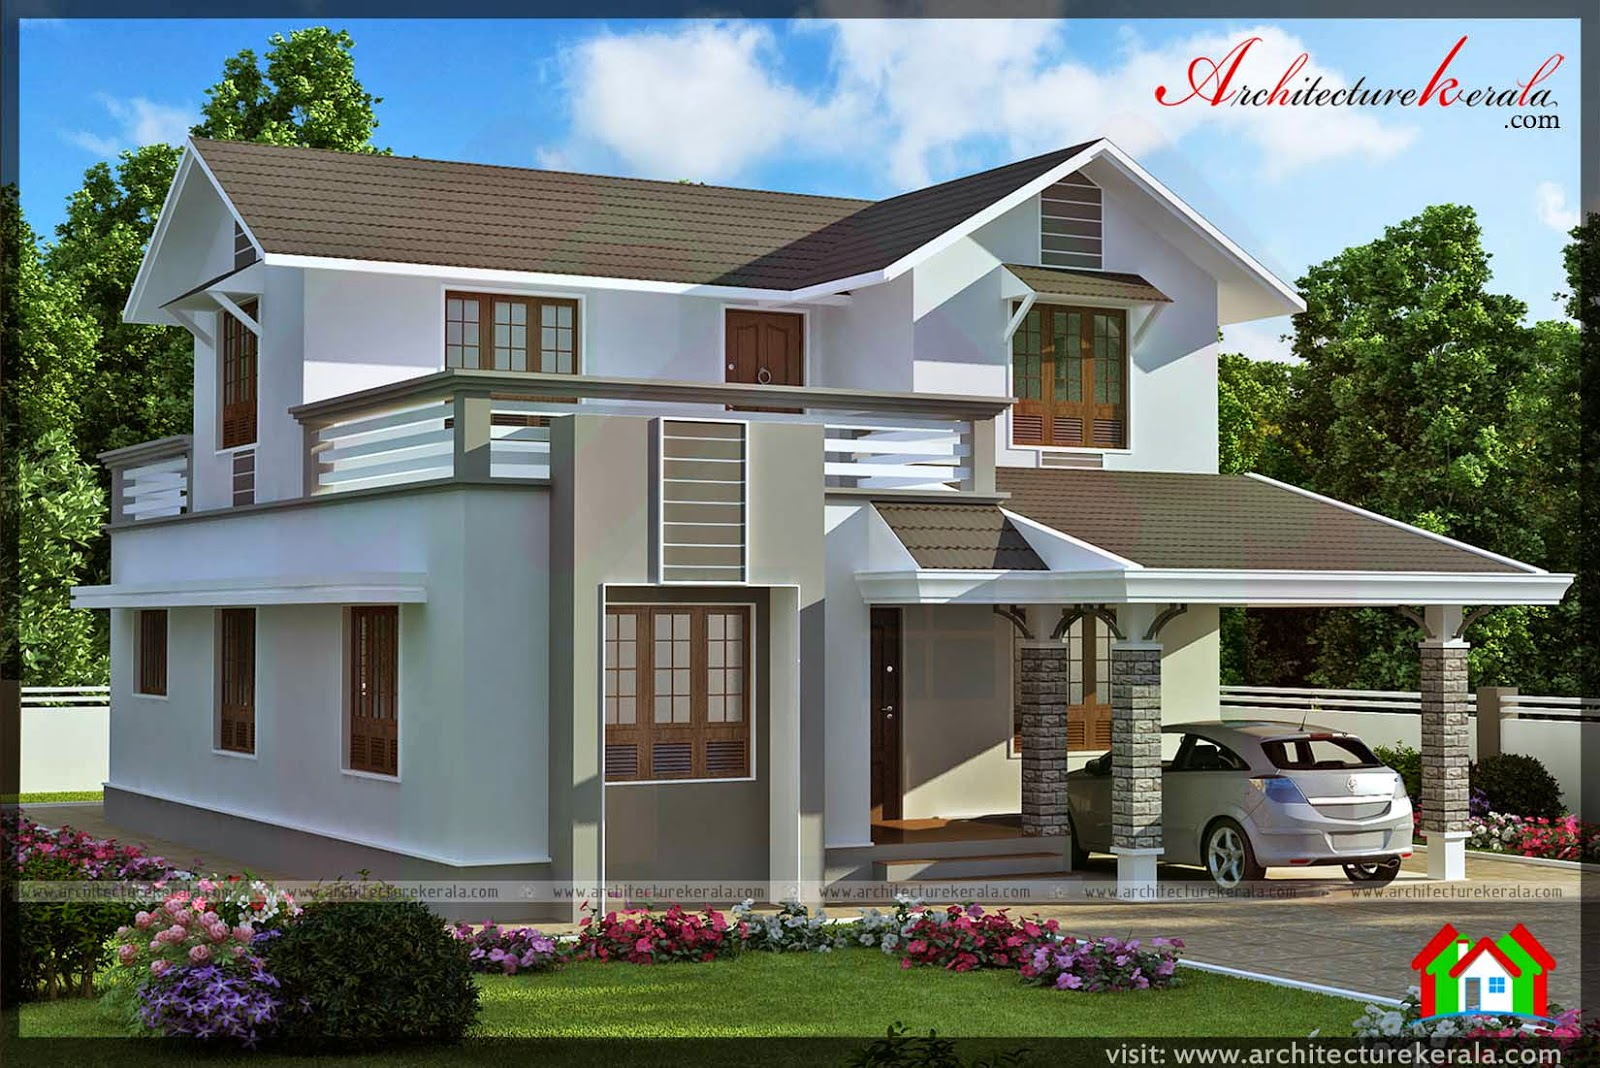 4 Bedroom Contemporary Style House Architecture Kerala